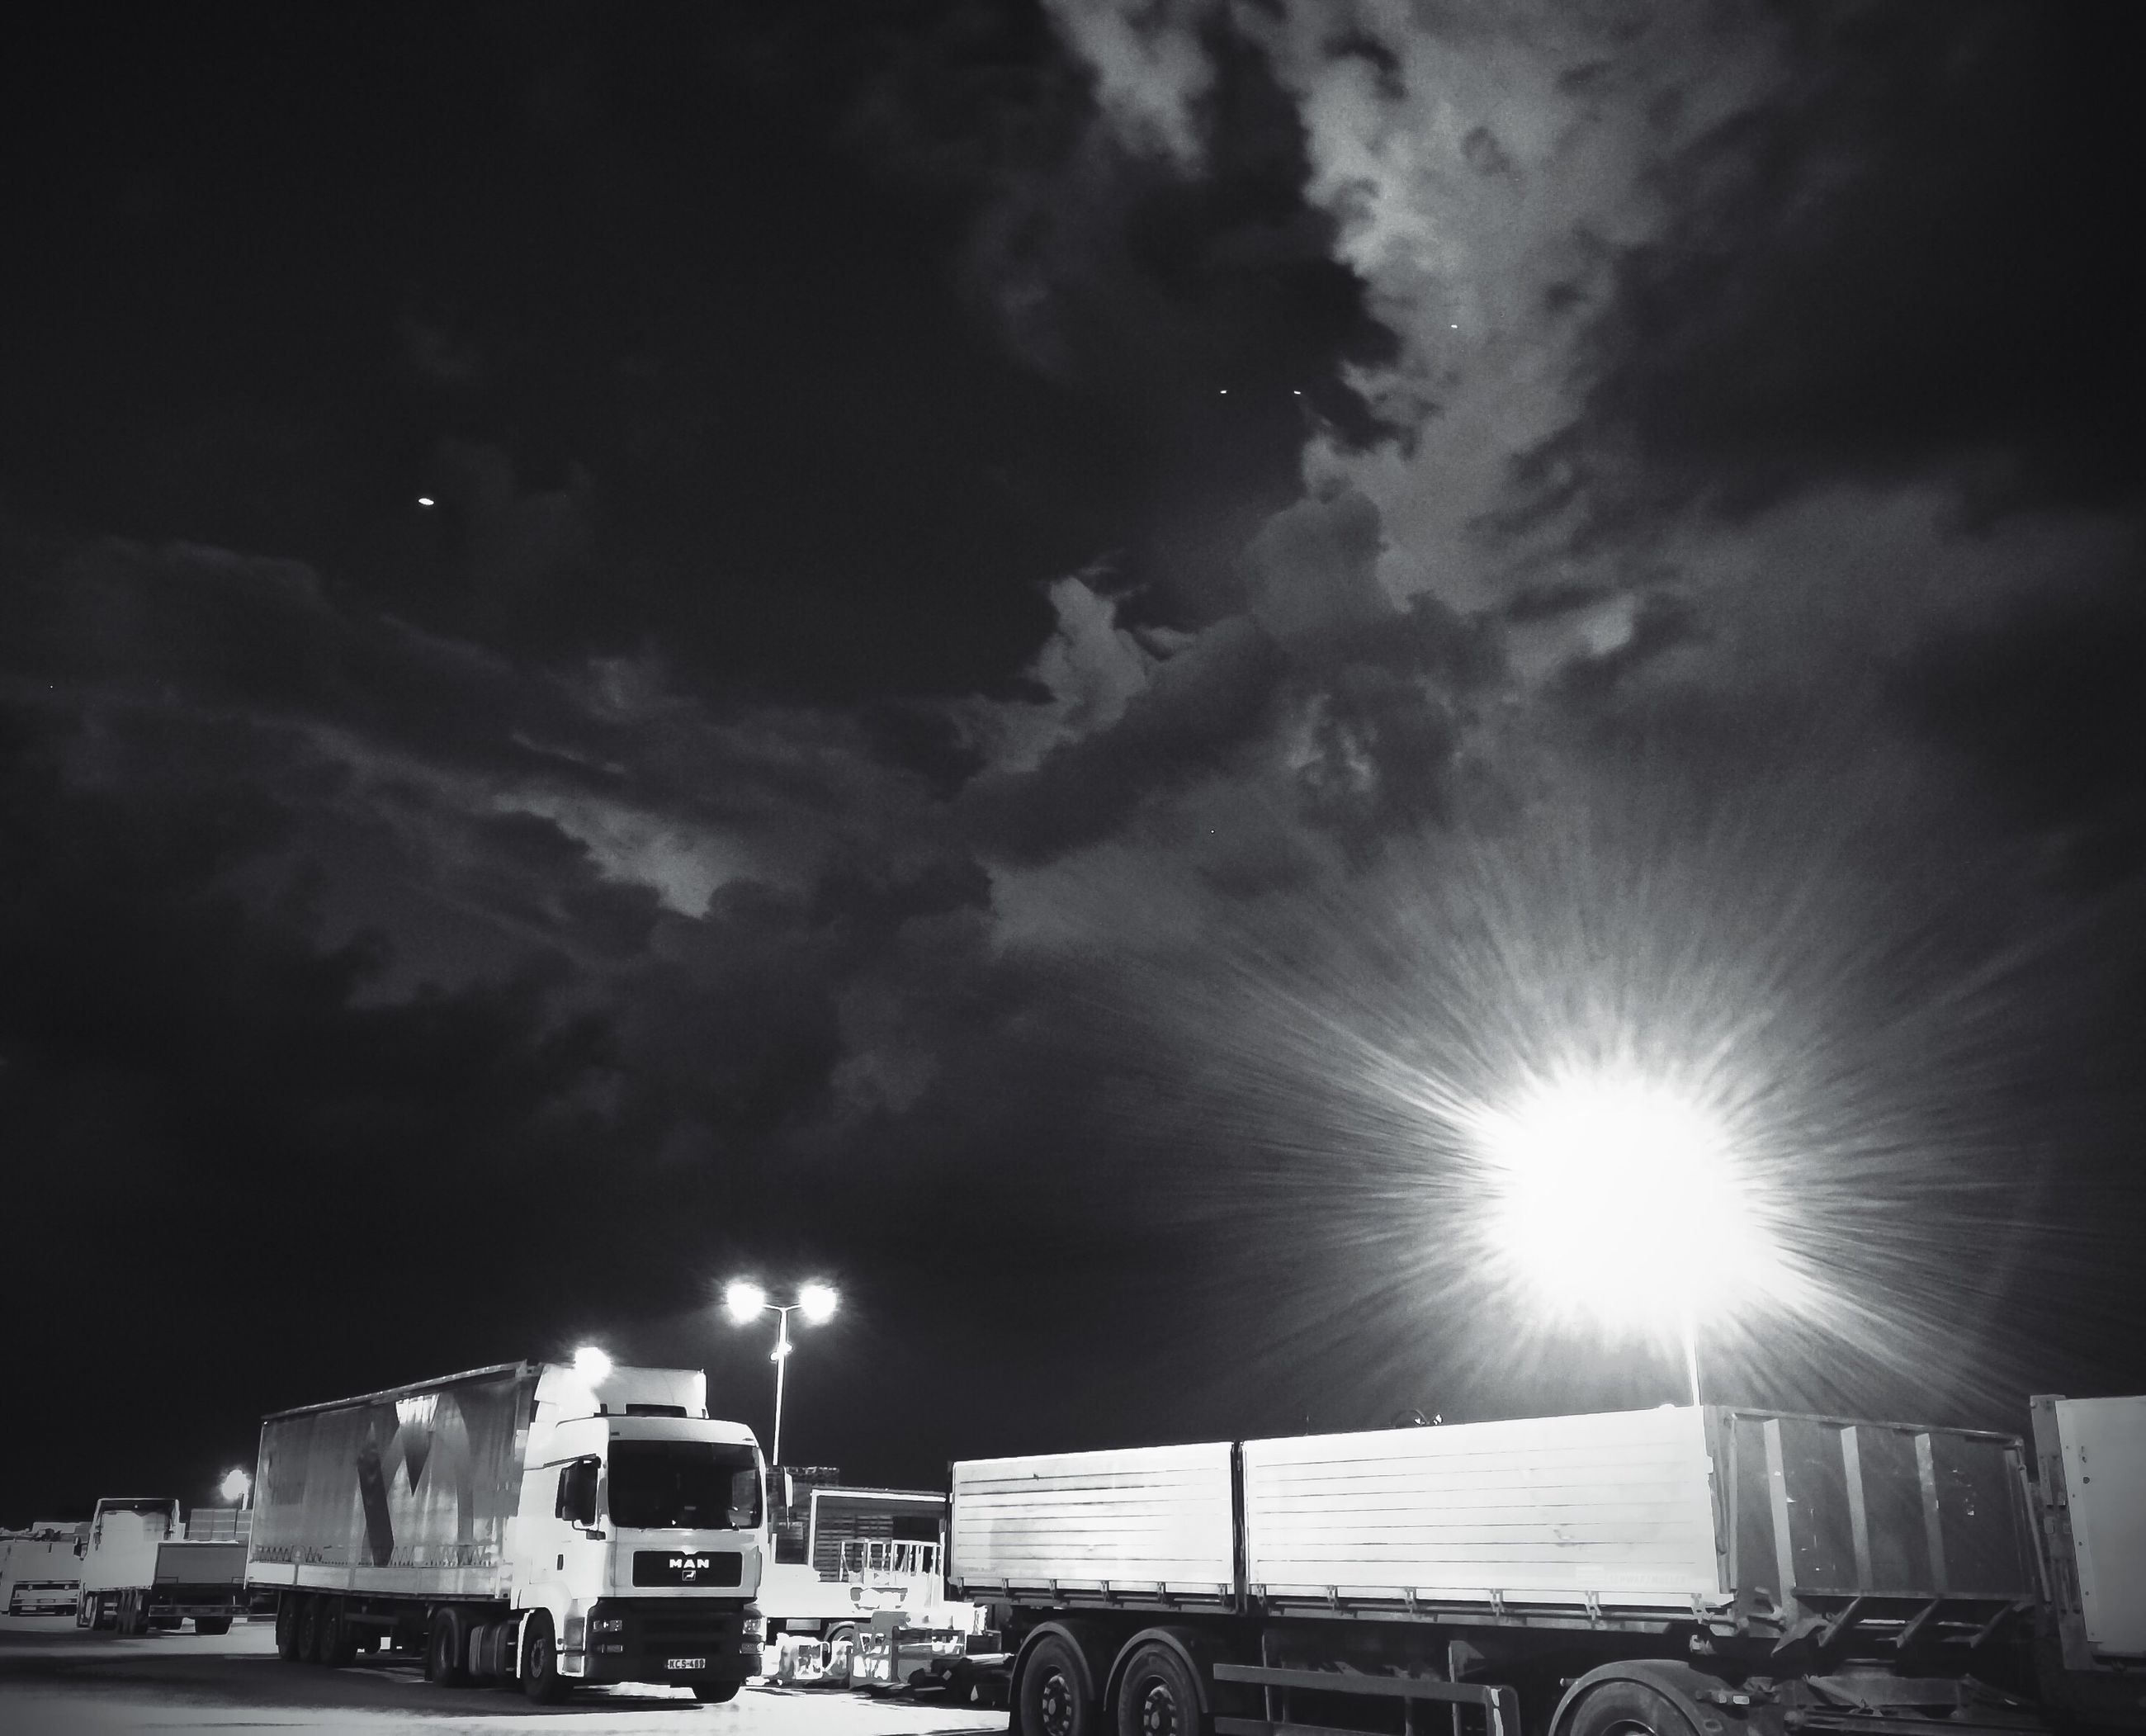 sky, built structure, cloud - sky, transportation, architecture, building exterior, night, car, illuminated, mode of transport, street light, low angle view, land vehicle, cloudy, outdoors, weather, cloud, no people, nature, lens flare